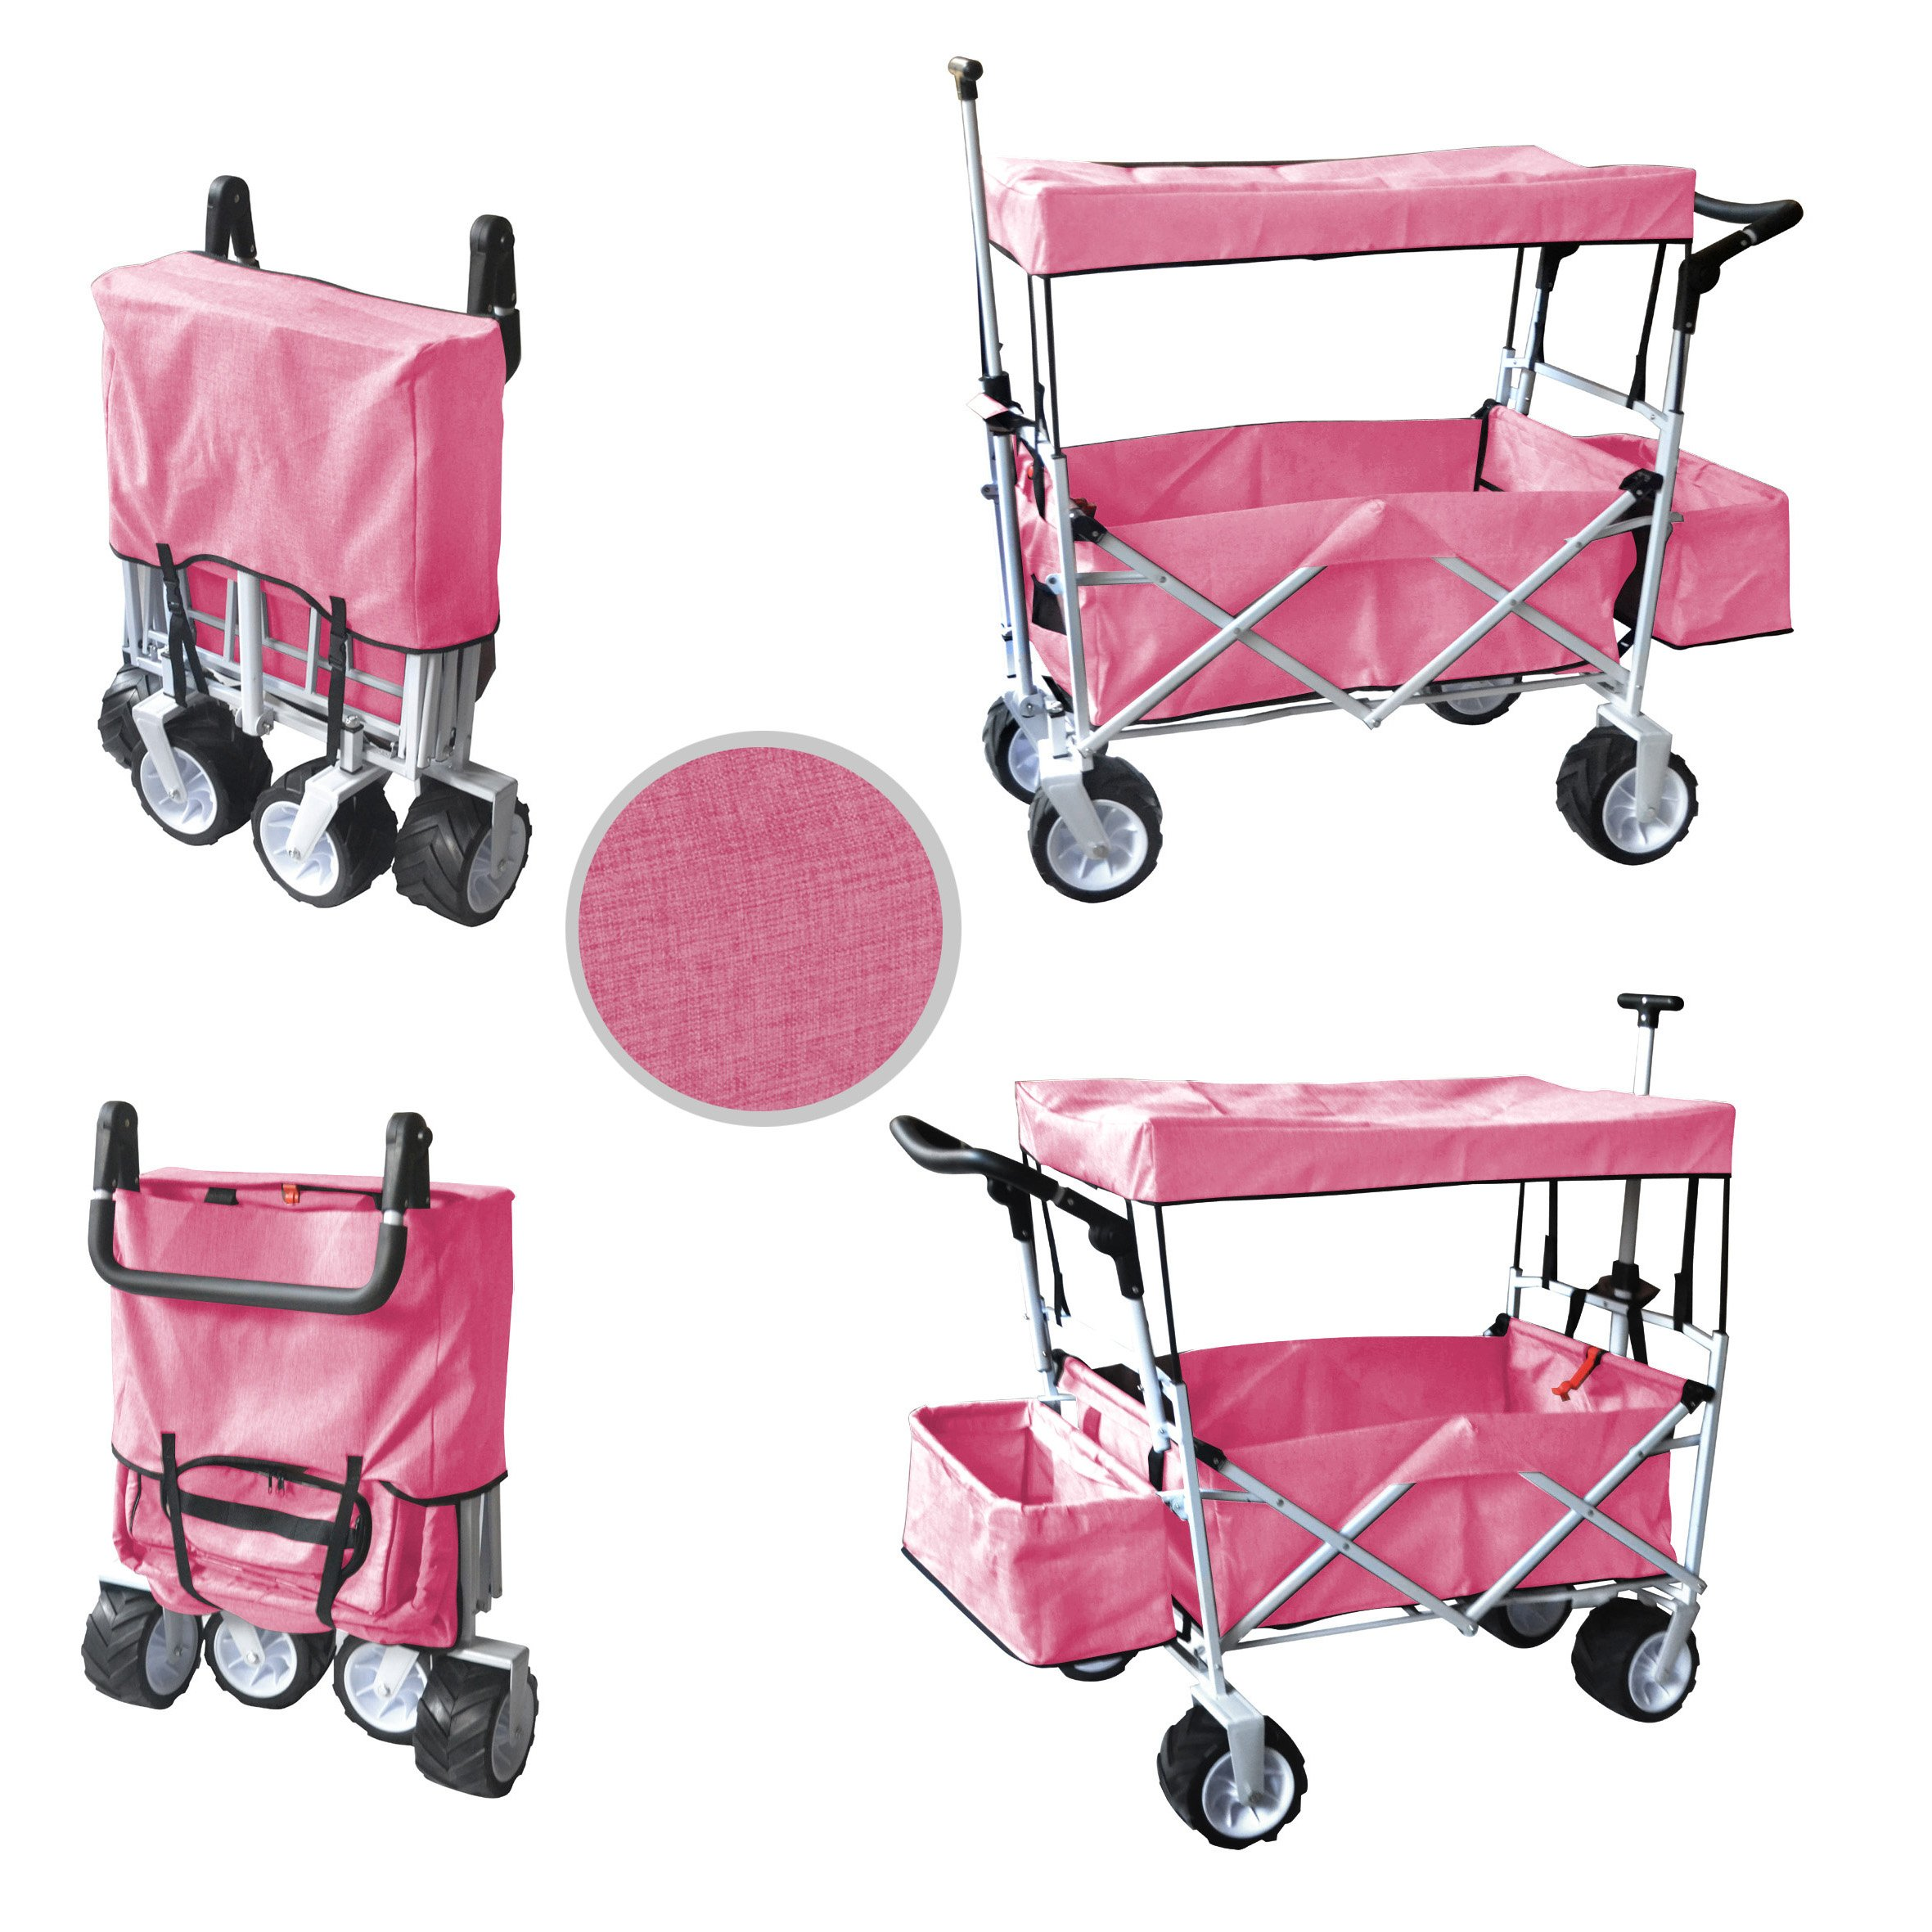 PINKFREE ICE COOLER PUSH AND PULL HANDLE FOLDING BABY STROLLER WAGON OUTDOOR SPORT COLLAPSIBLE KIDS TROLLEY W/ CANOPY GARDEN UTILITY SHOPPING TRAVEL BEACH CART - EASY SETUP NO TOOL NECESSARY by WagonBuddy